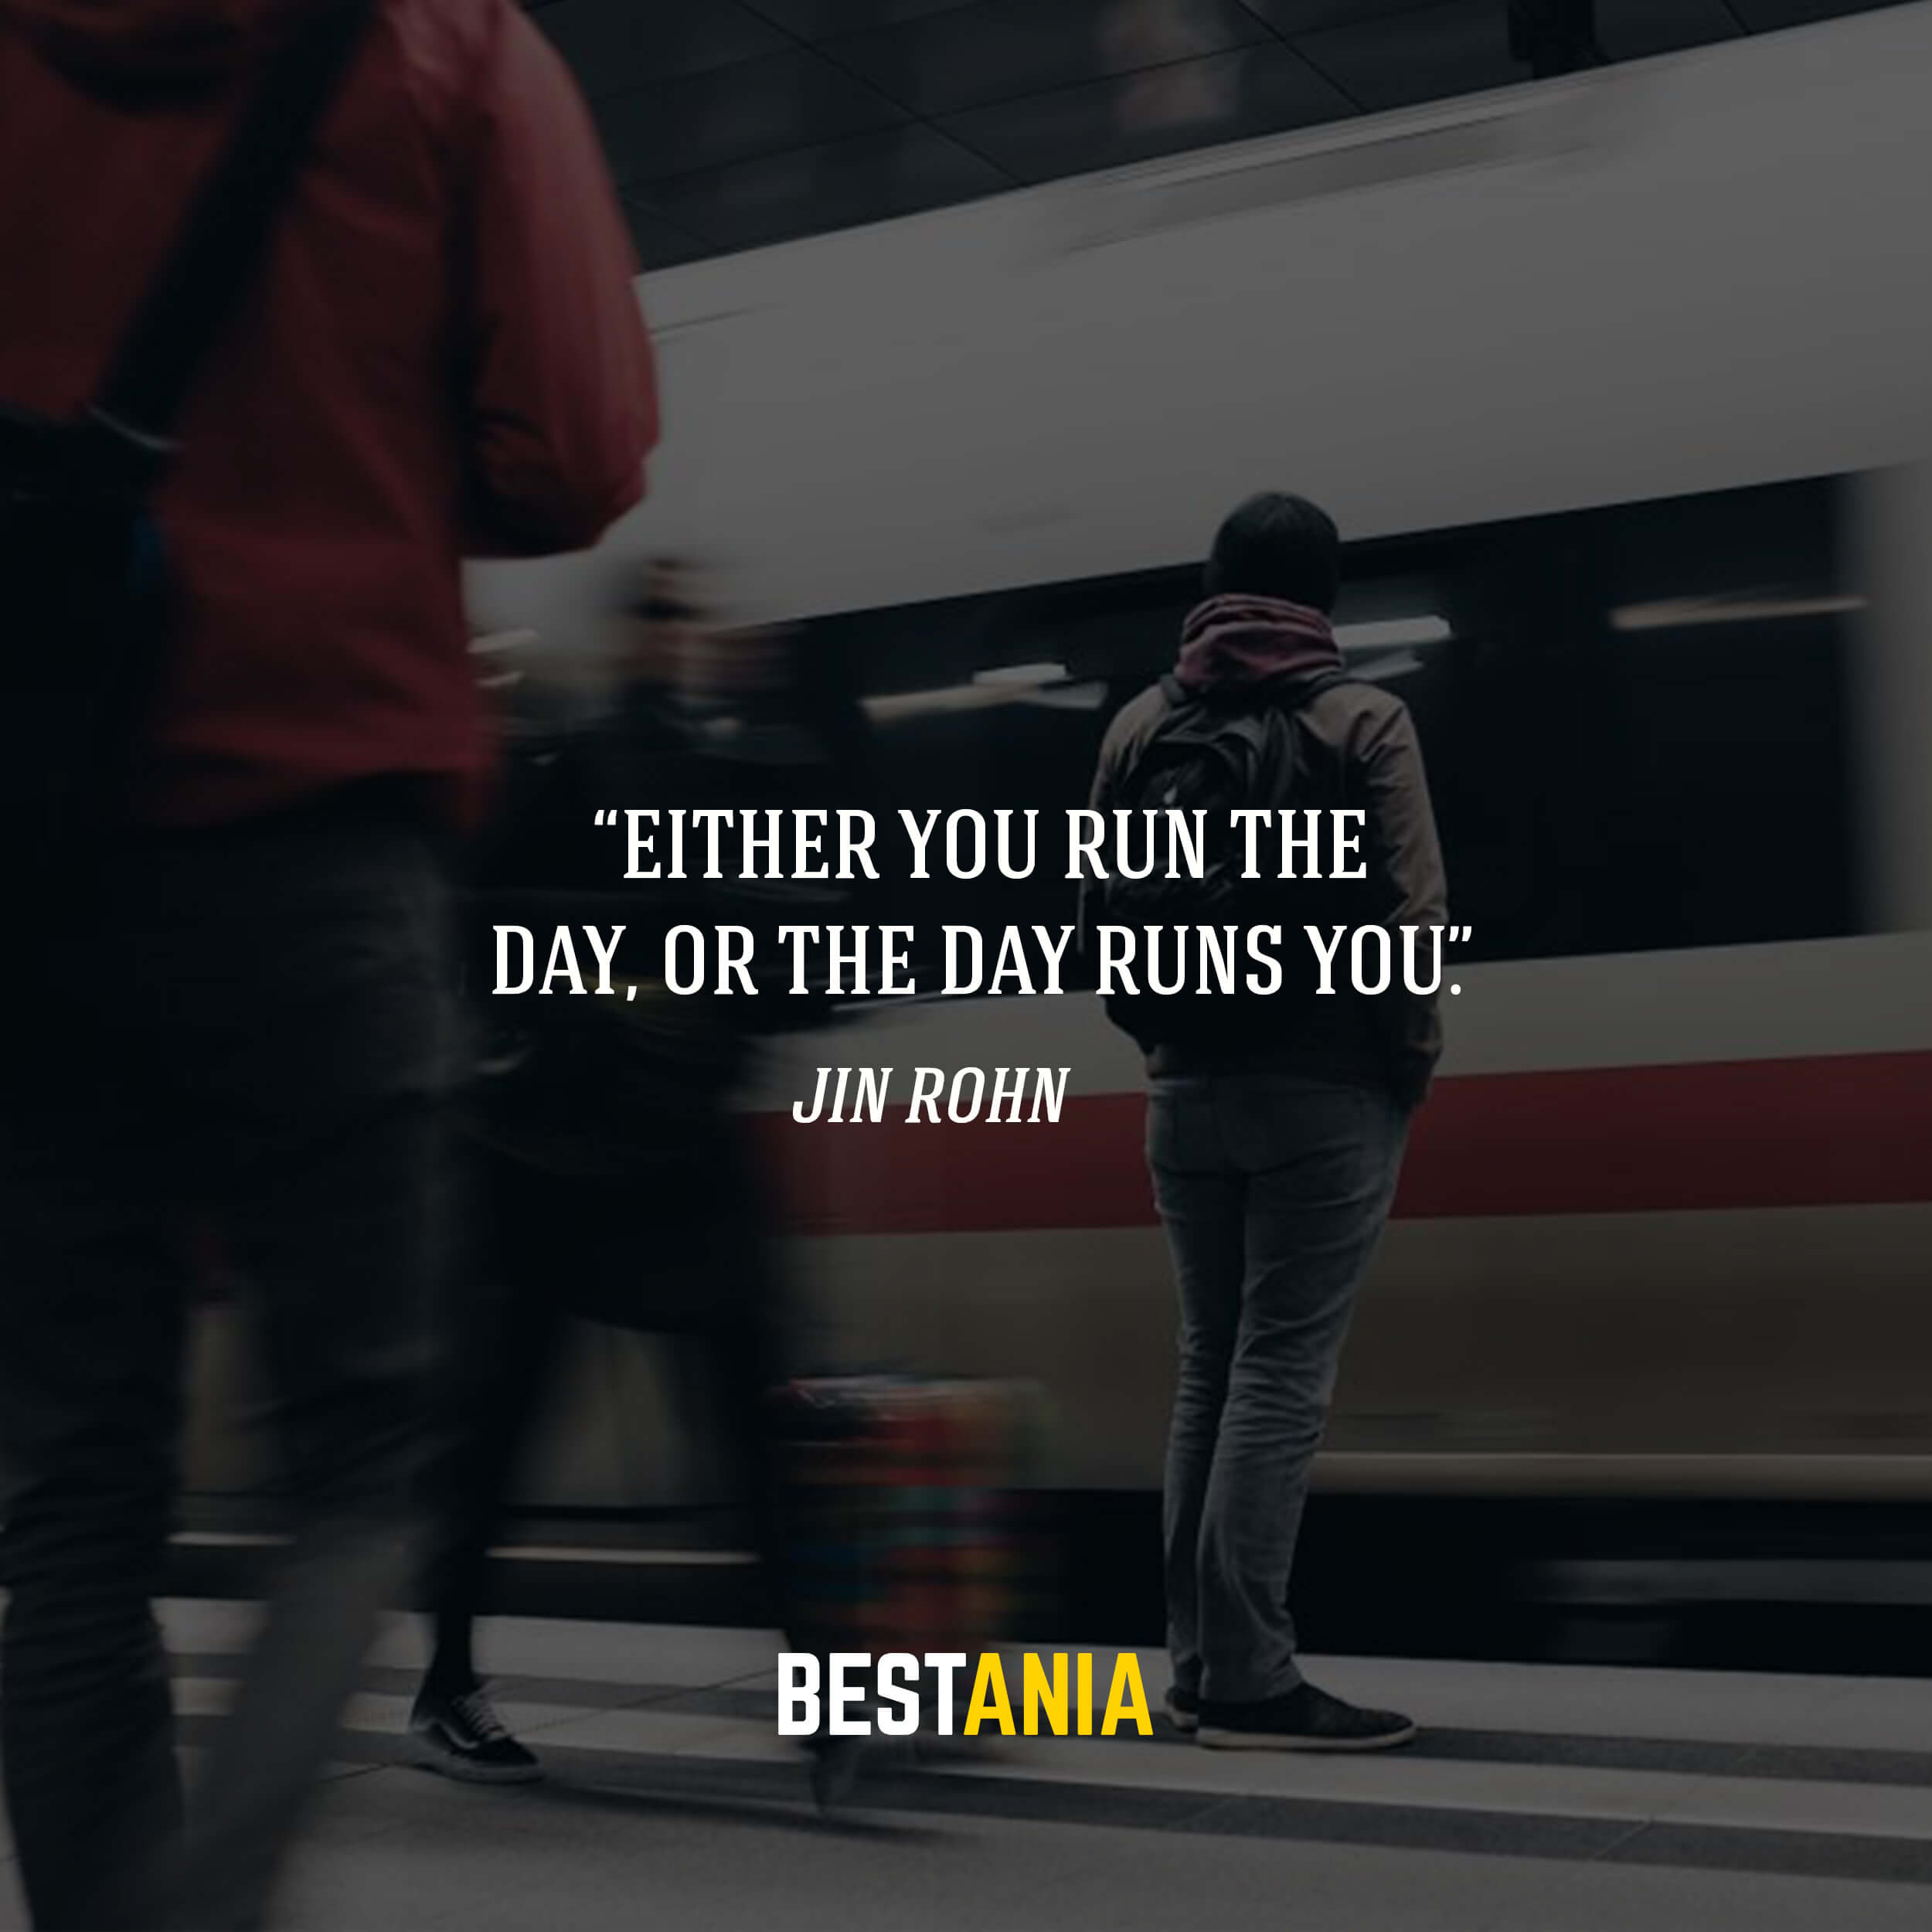 """Either you run the day, or the day runs you."" – Jin Rohn"